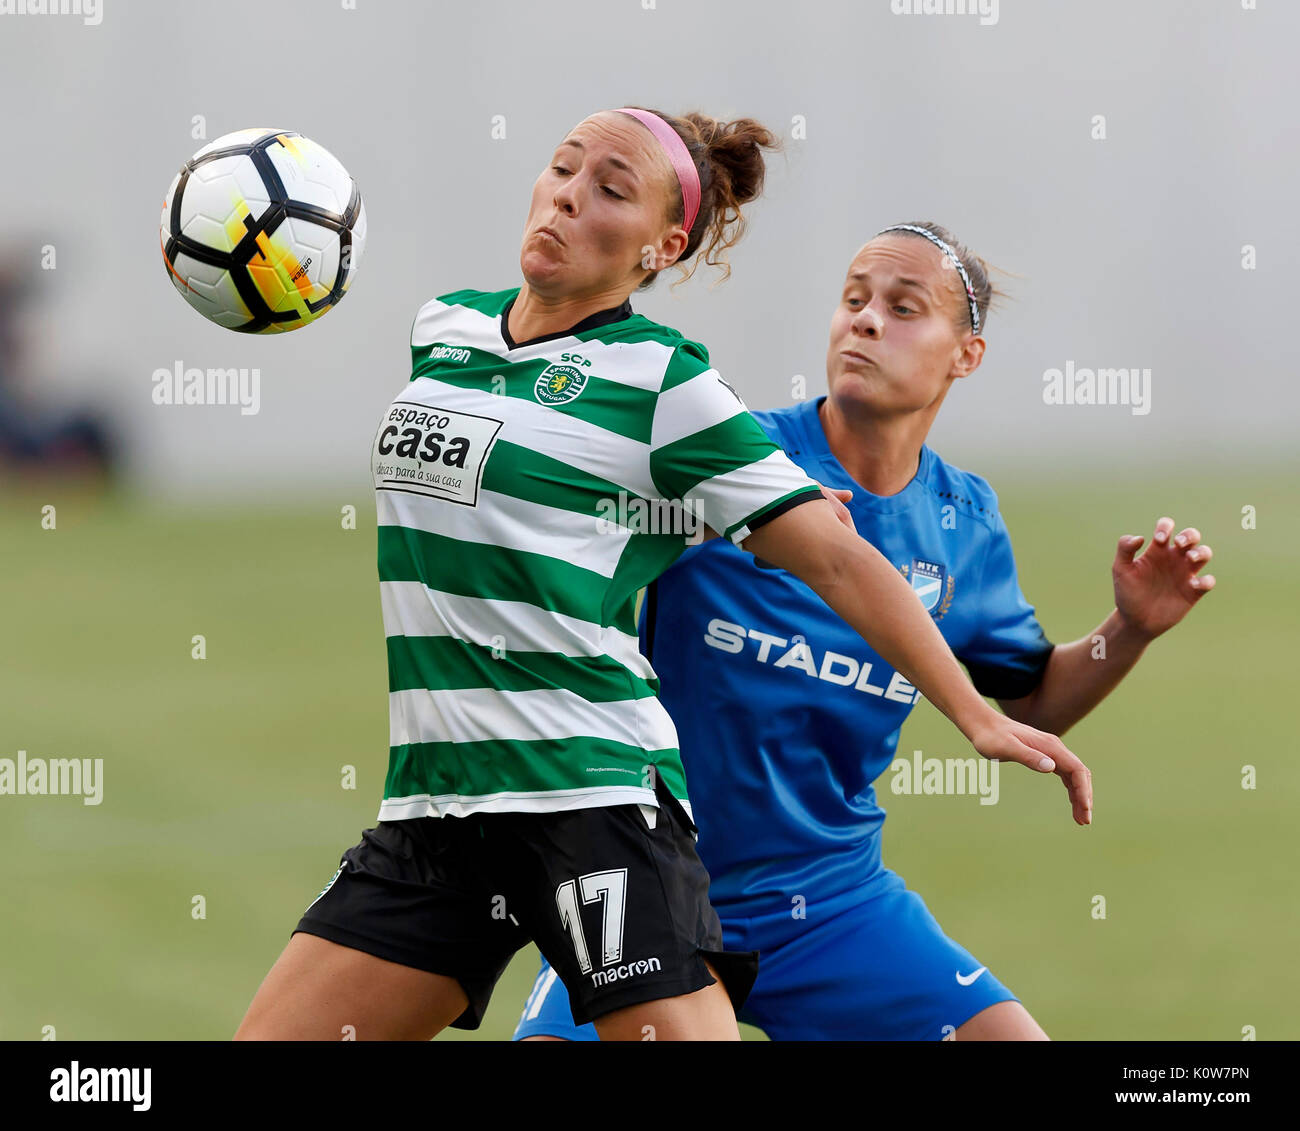 Budapest Hungary 25th August 2017 Ana Leite 17 of Sporting CP